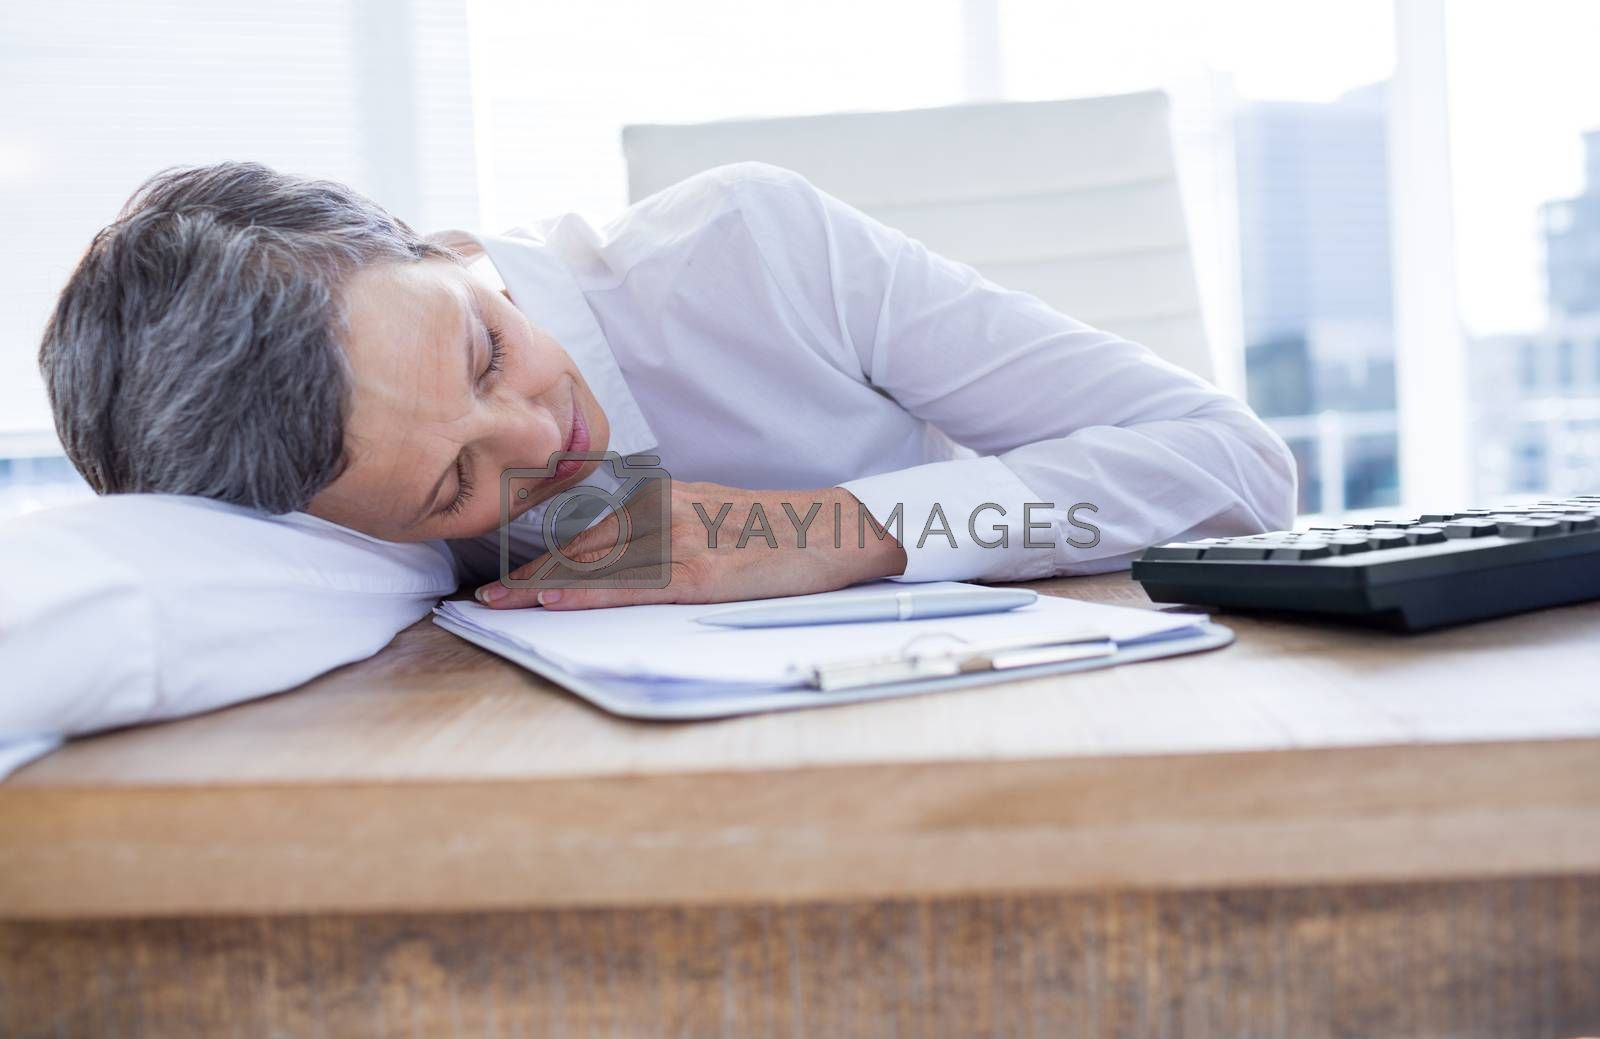 Royalty free image of Tired businesswoman sleeping at her desk by Wavebreakmedia